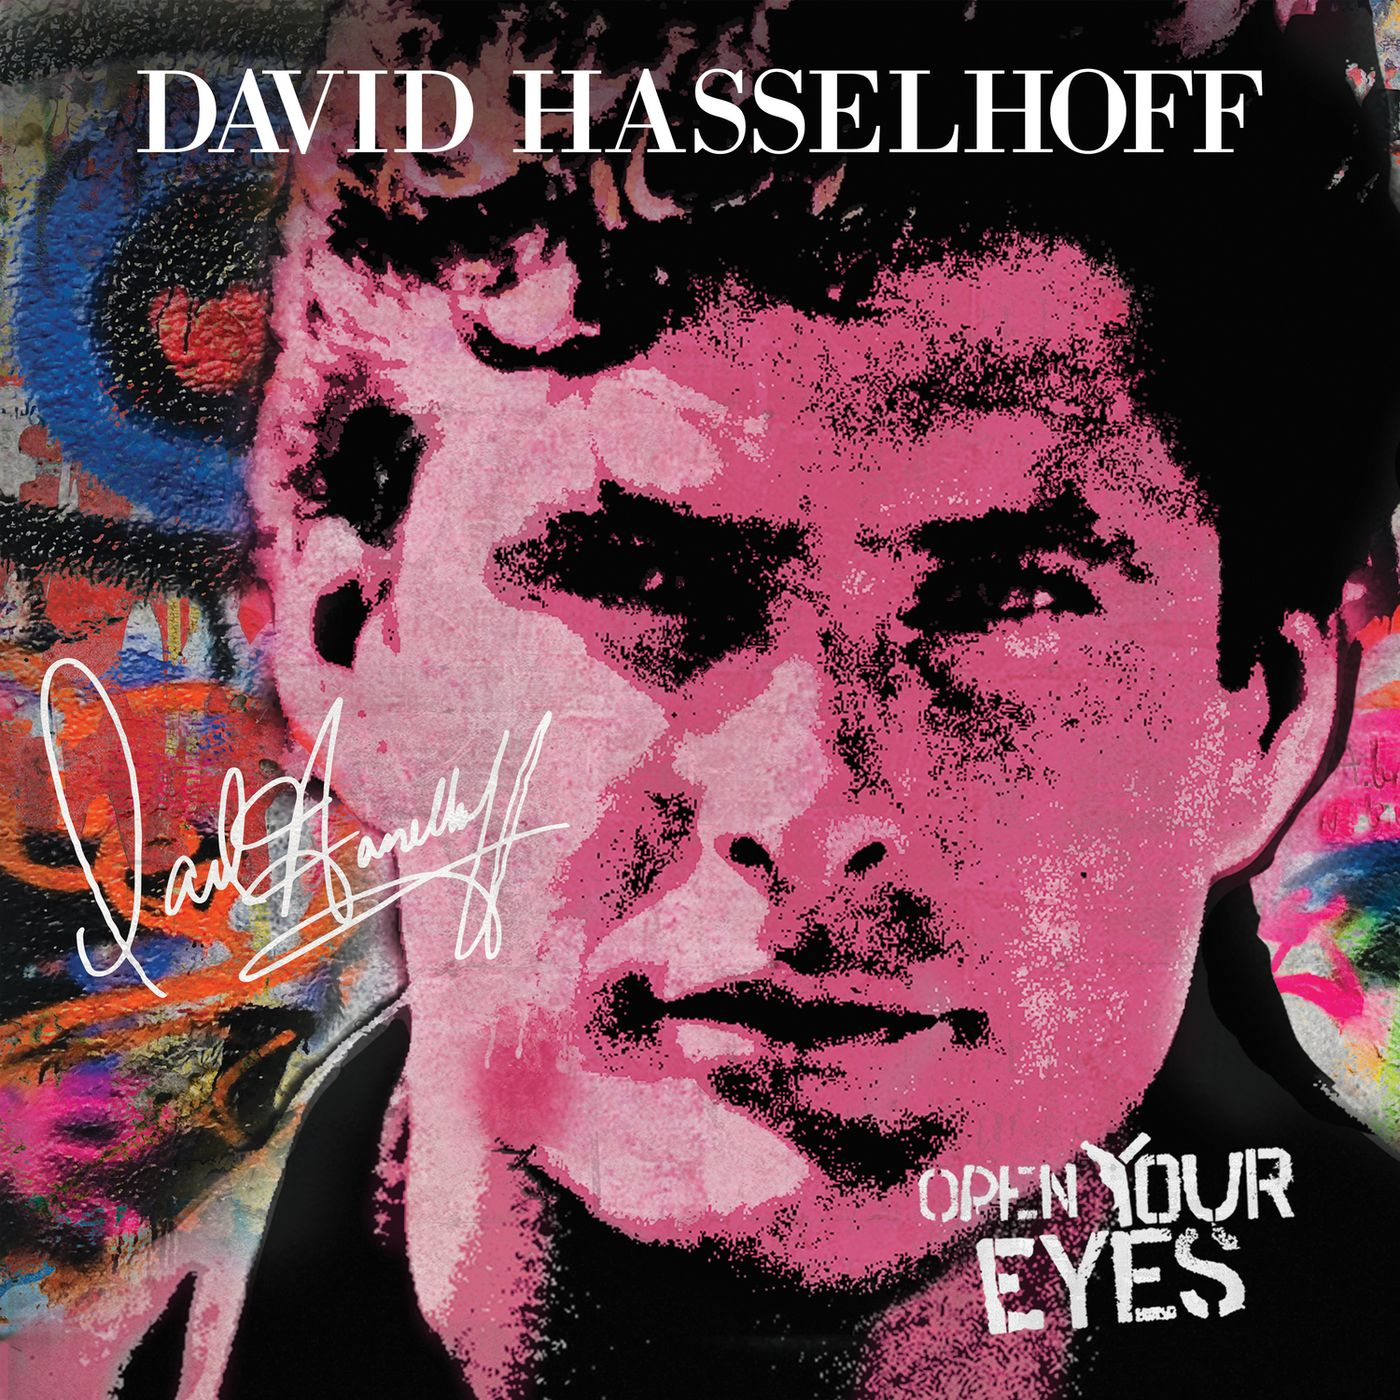 David Hasselhoff - Open Your Eyes album cover